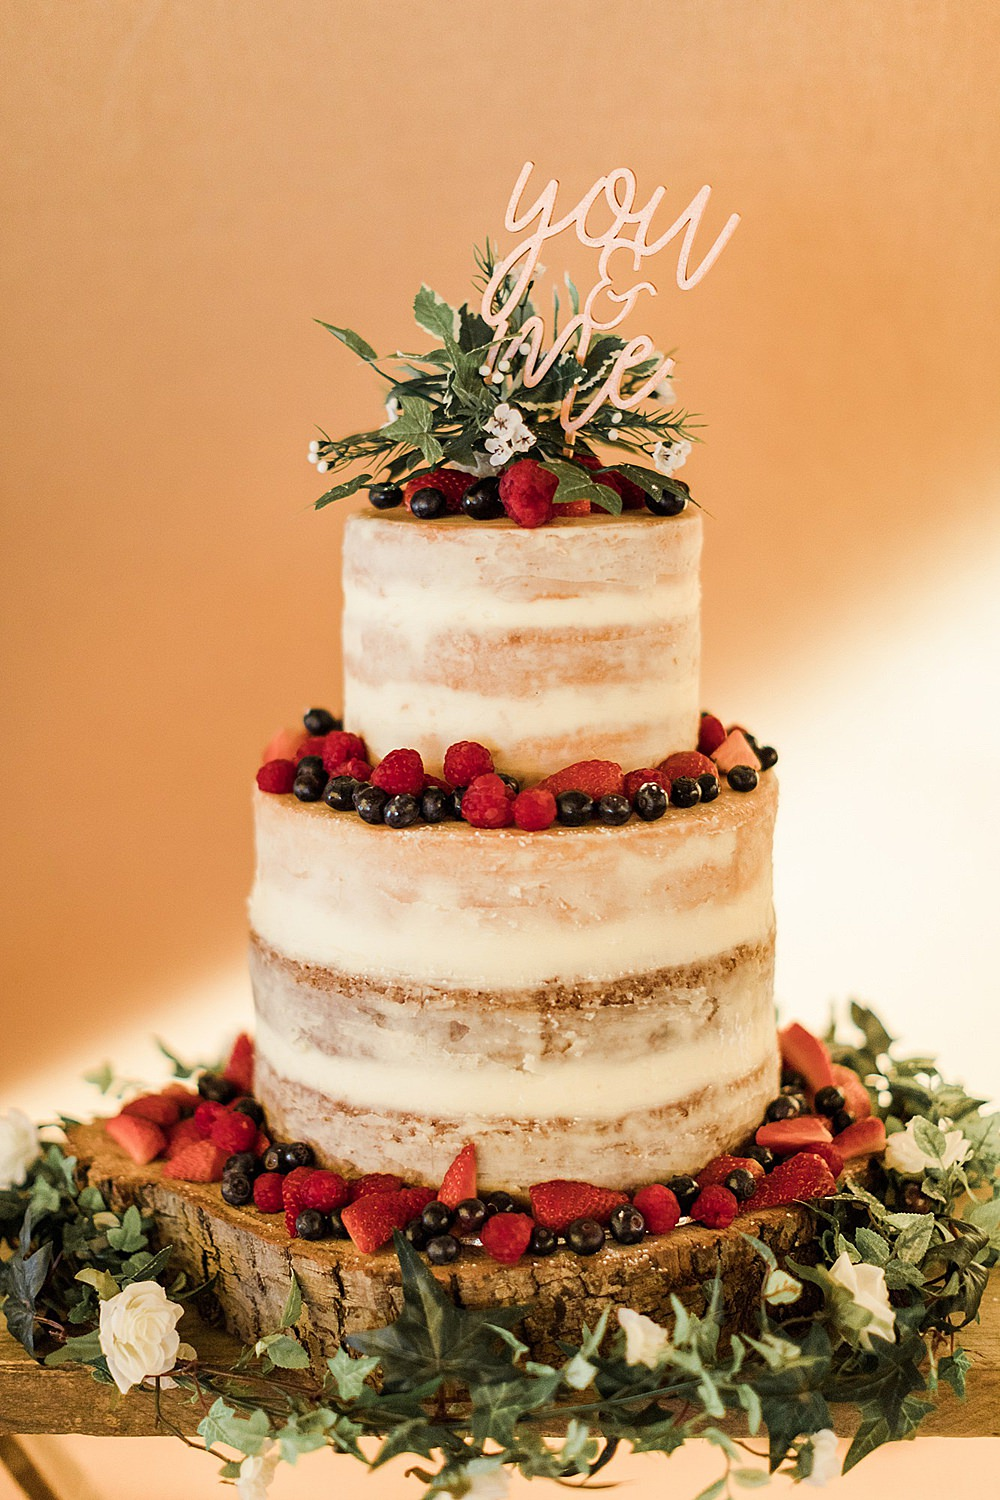 Semi Naked Cake Fruit Topper Log Stand Chiltern Open Air Museum Wedding Terri & Lori Fine Art Photography